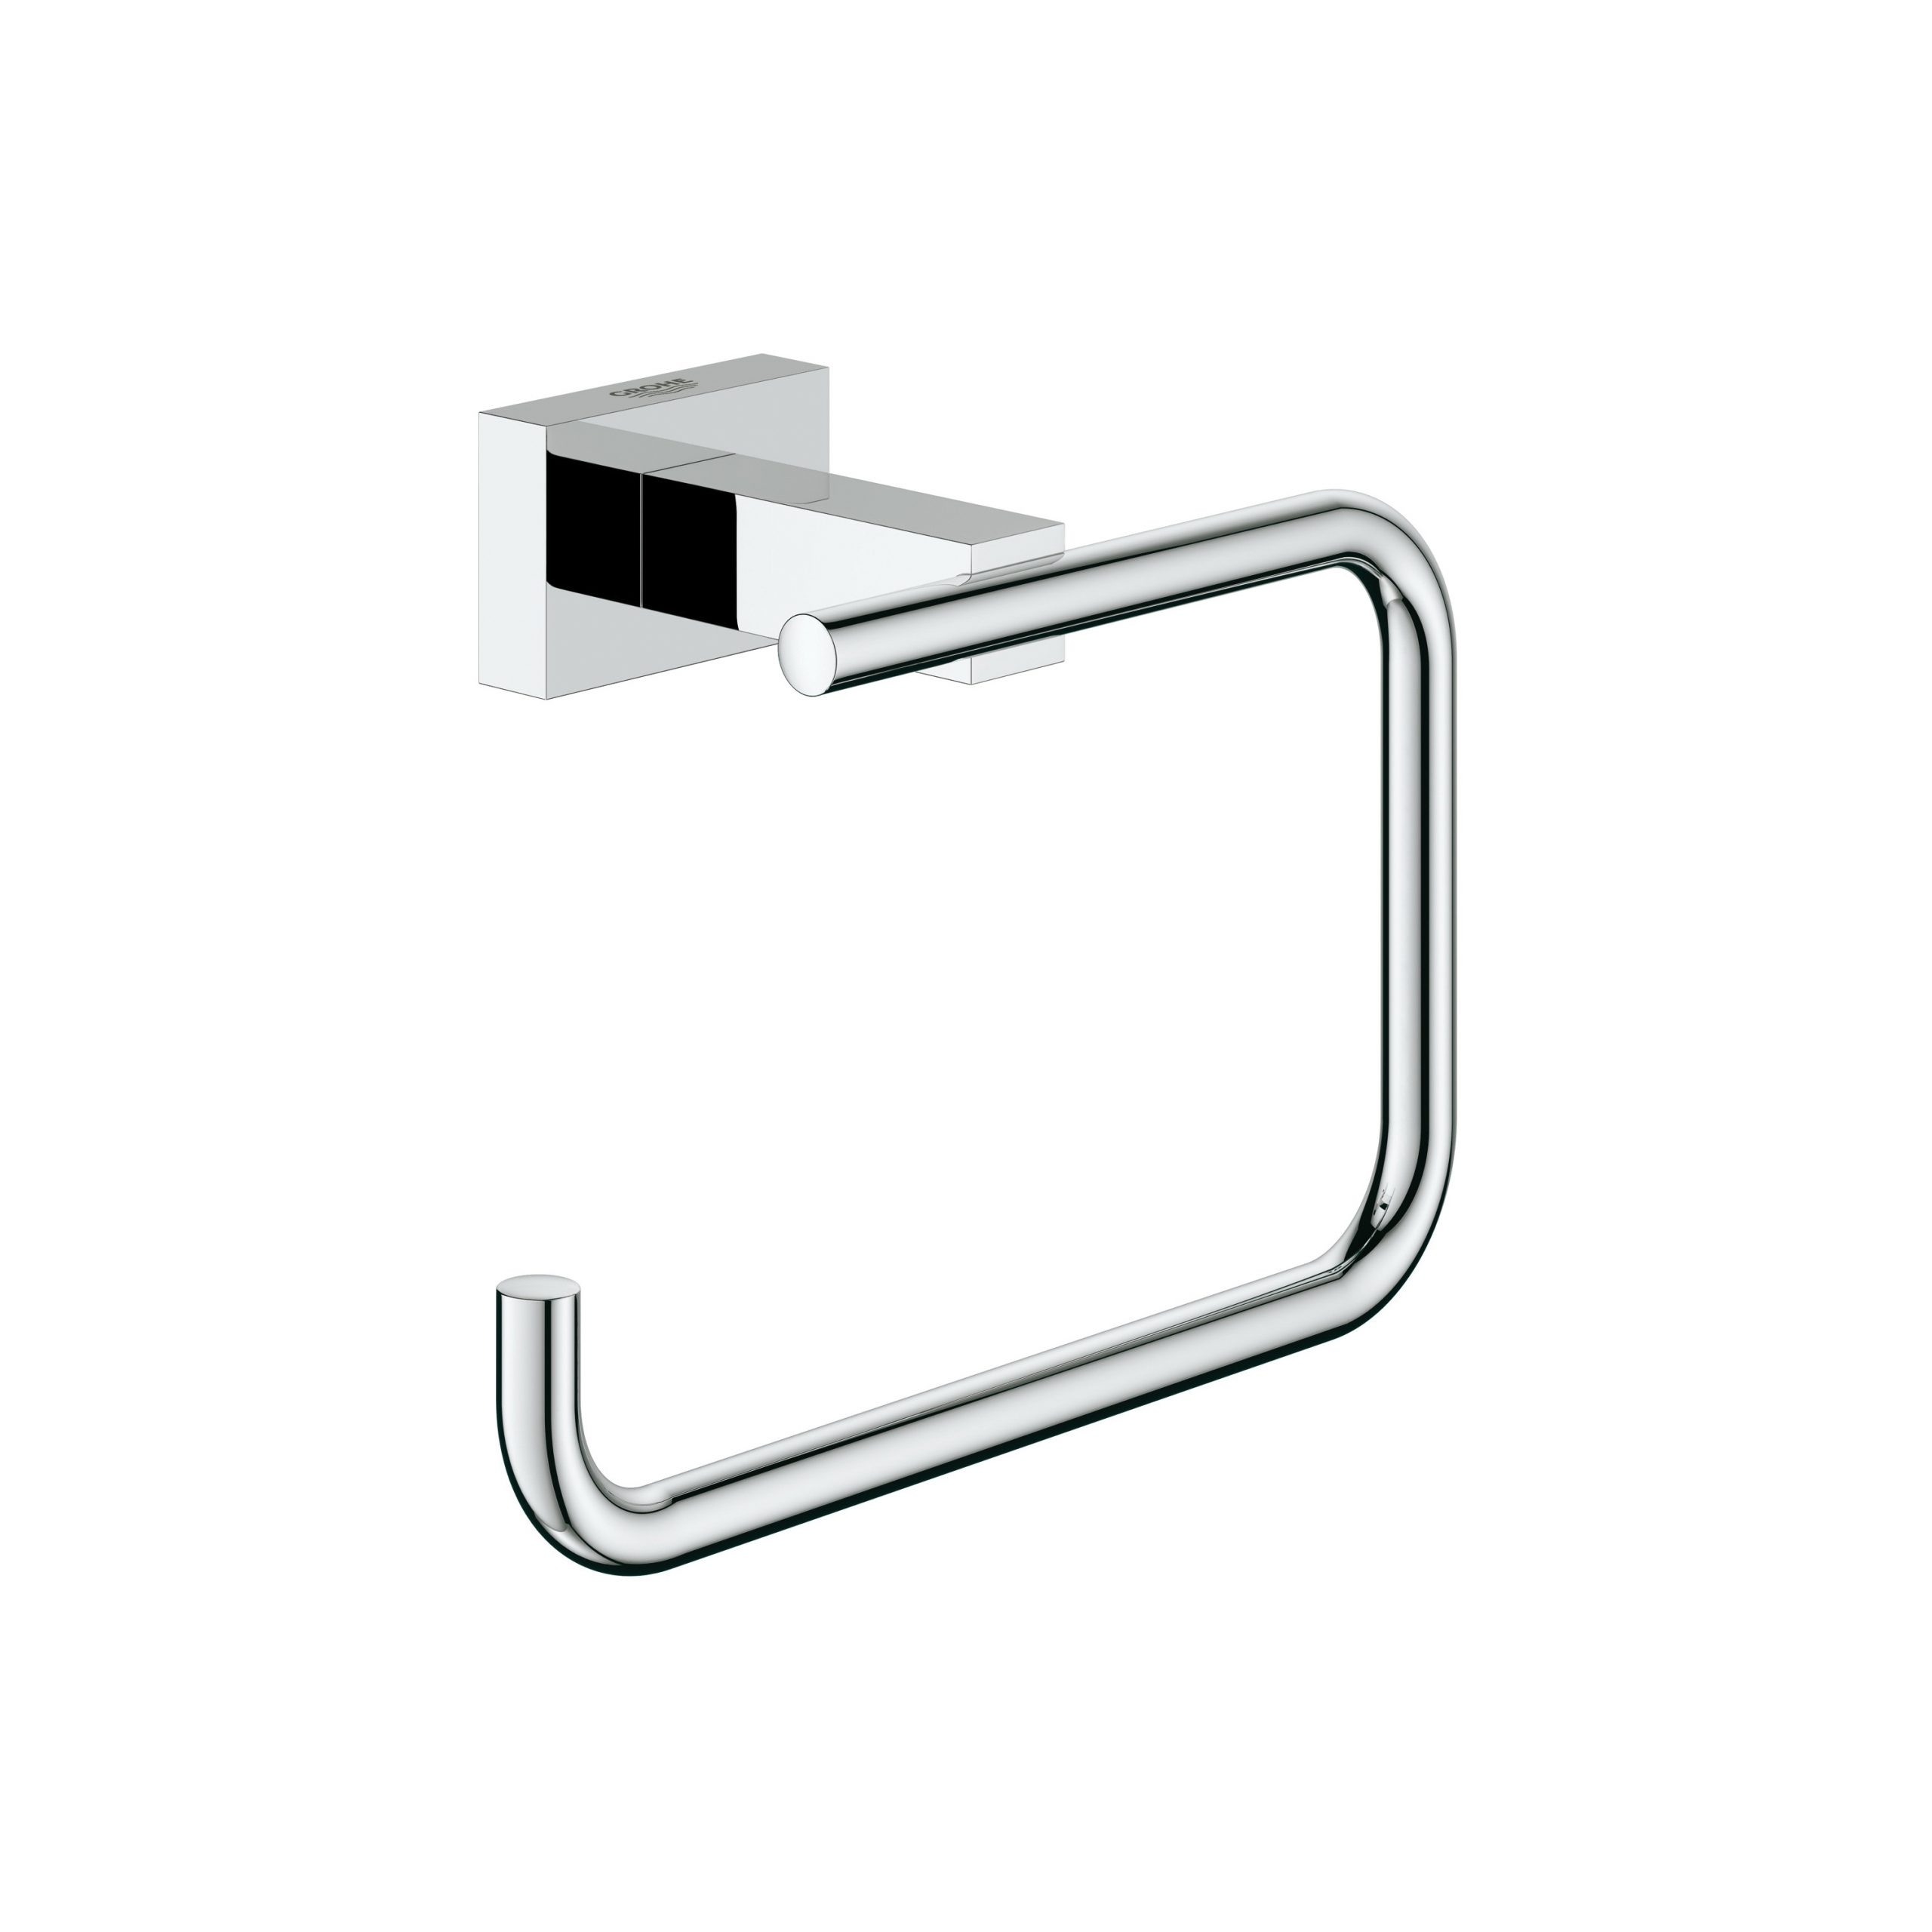 Toto Yp200#cp Transitional Collection Series A Paper Holder avec Découpage Cp